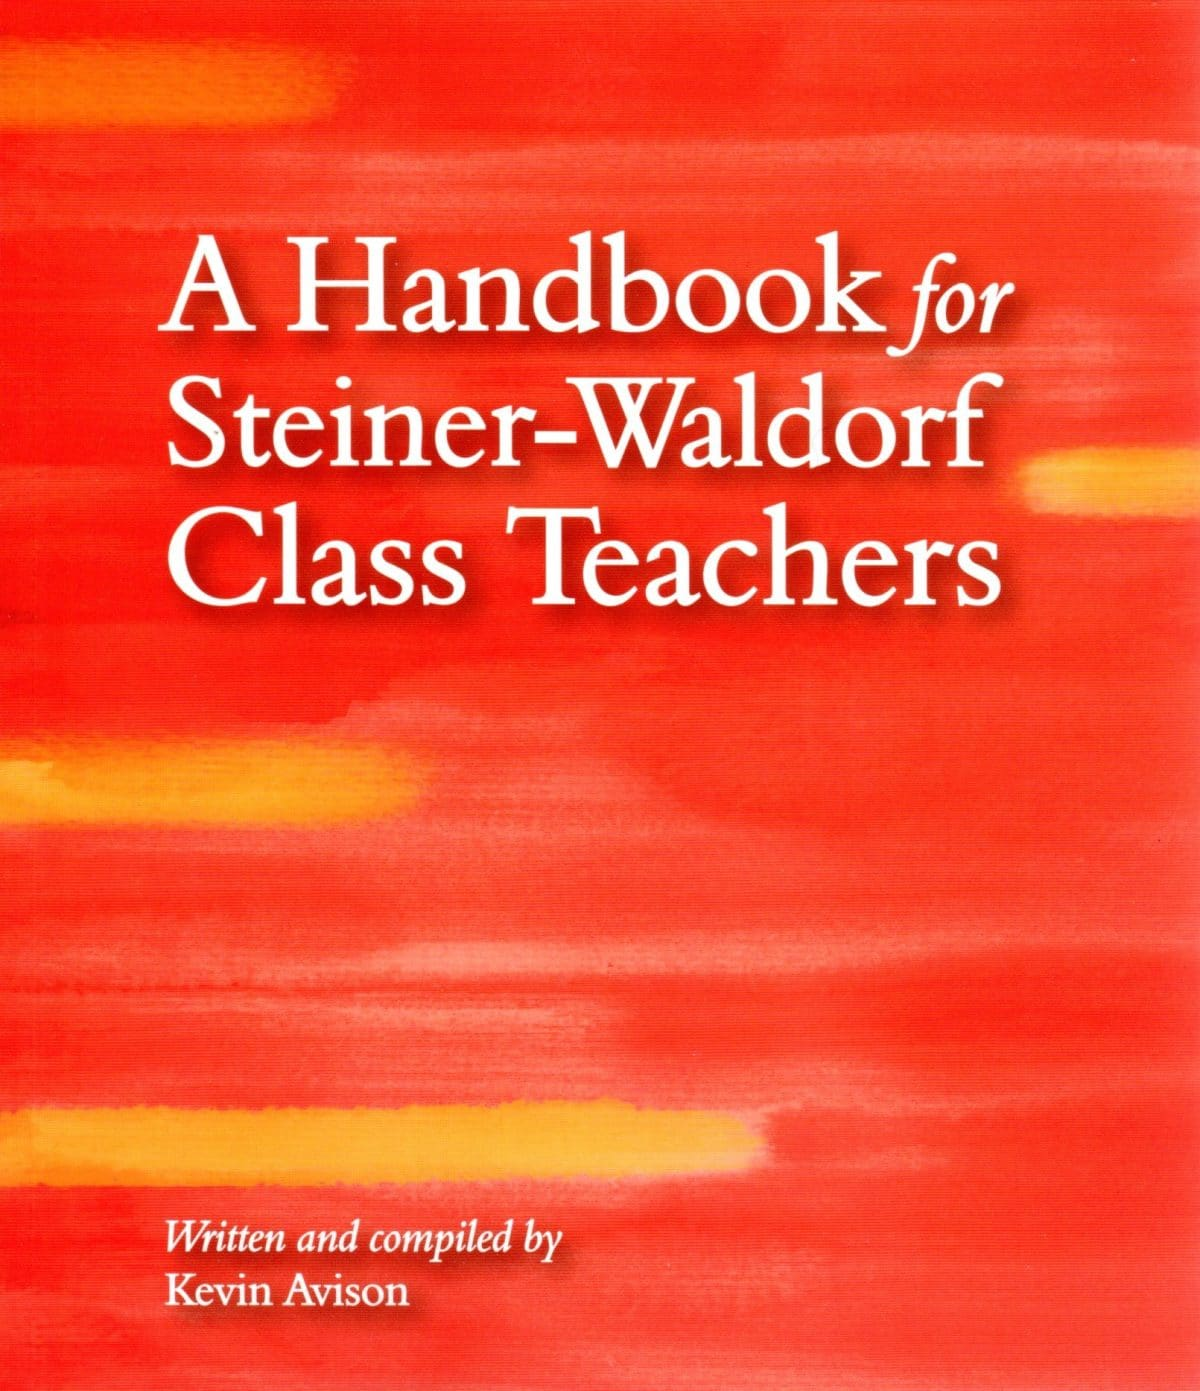 A Handbook for Steiner-Waldorf Class Teachers